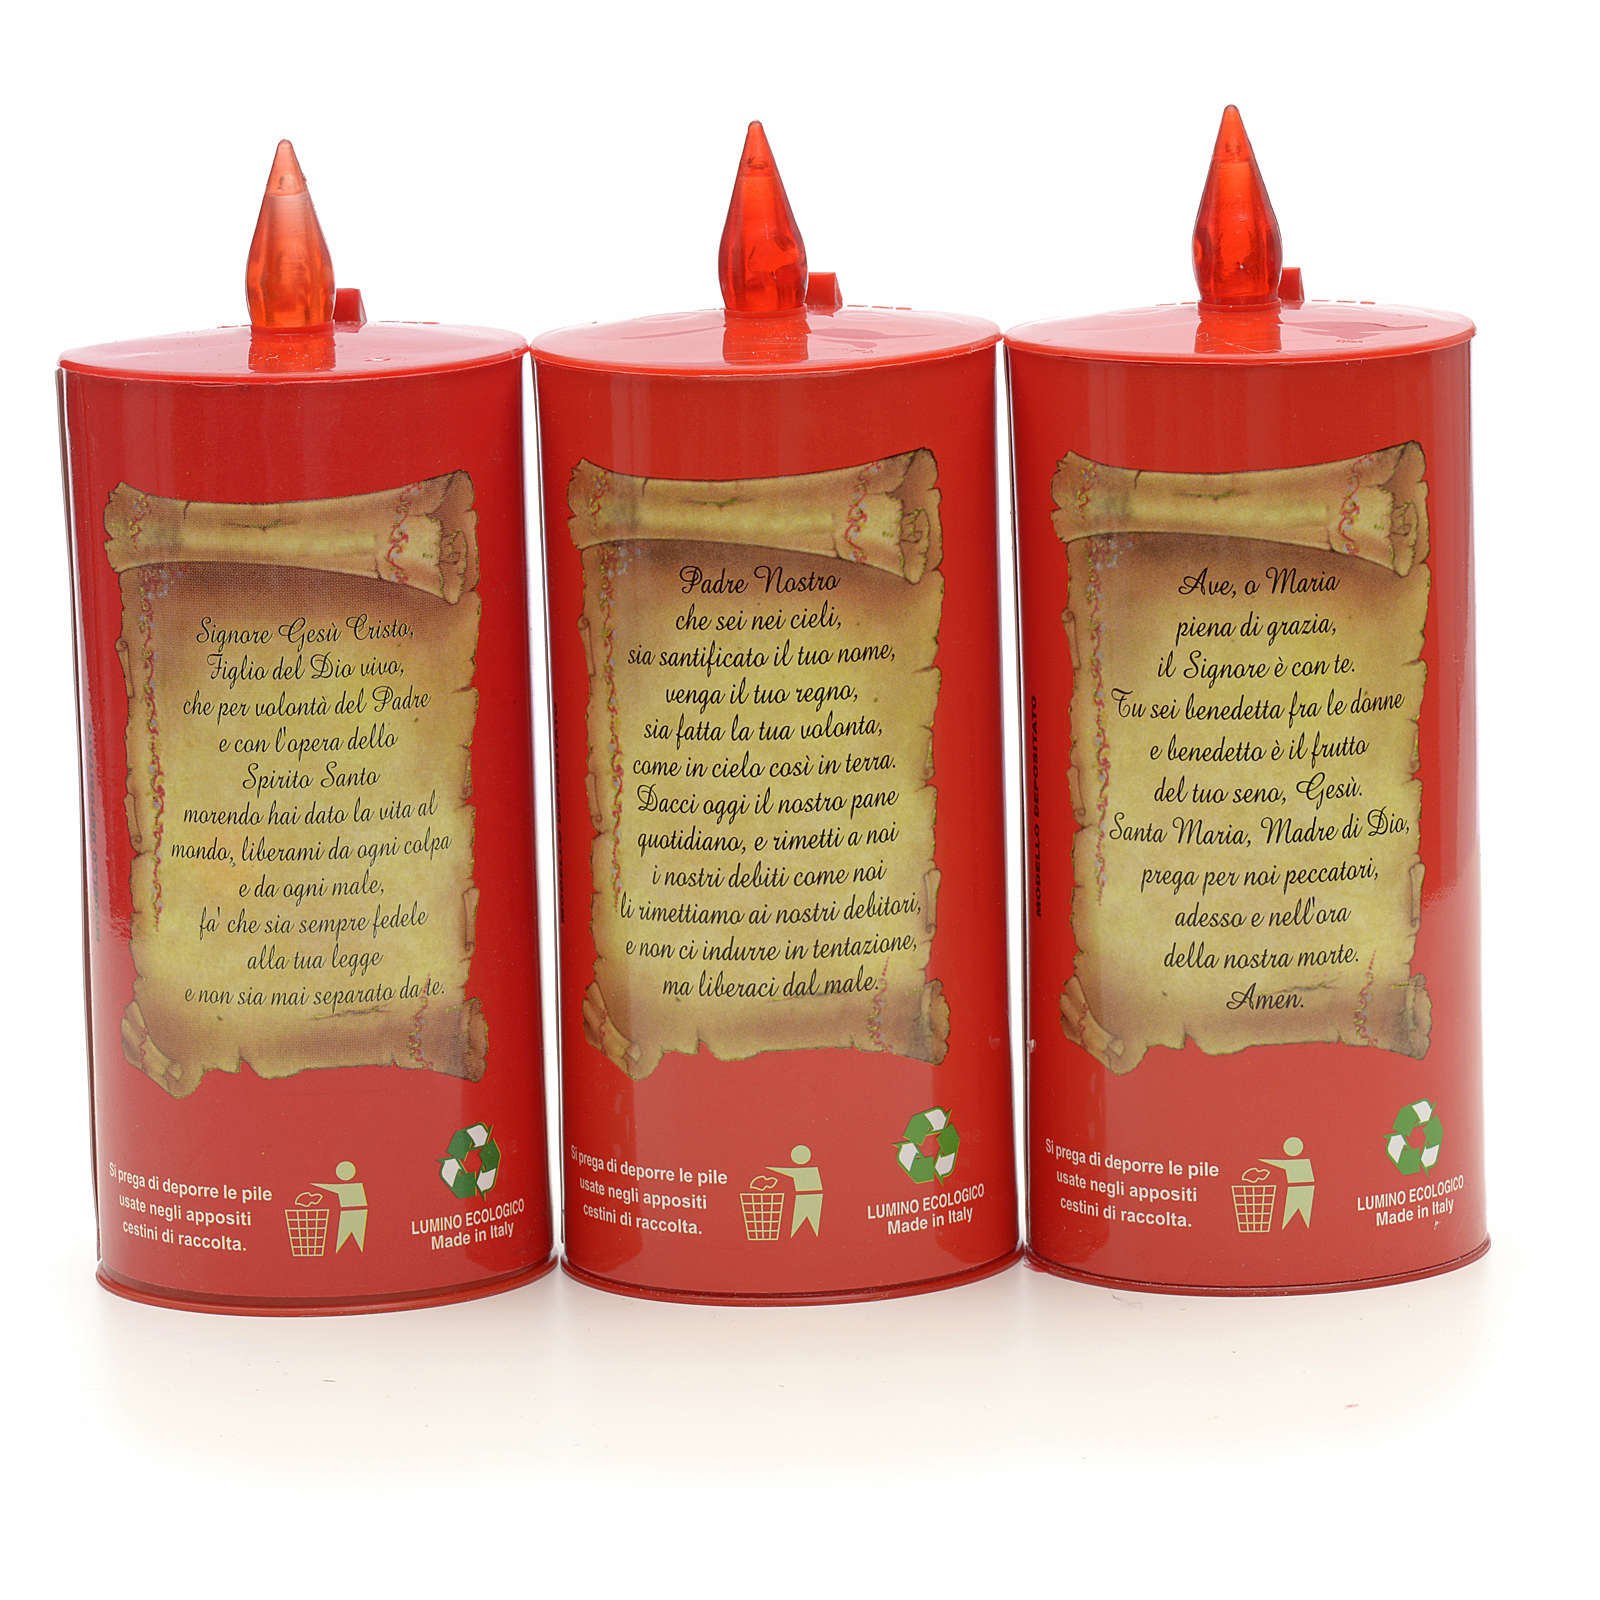 Electric votive candle, ecological in red cardboard, lasting 70 3